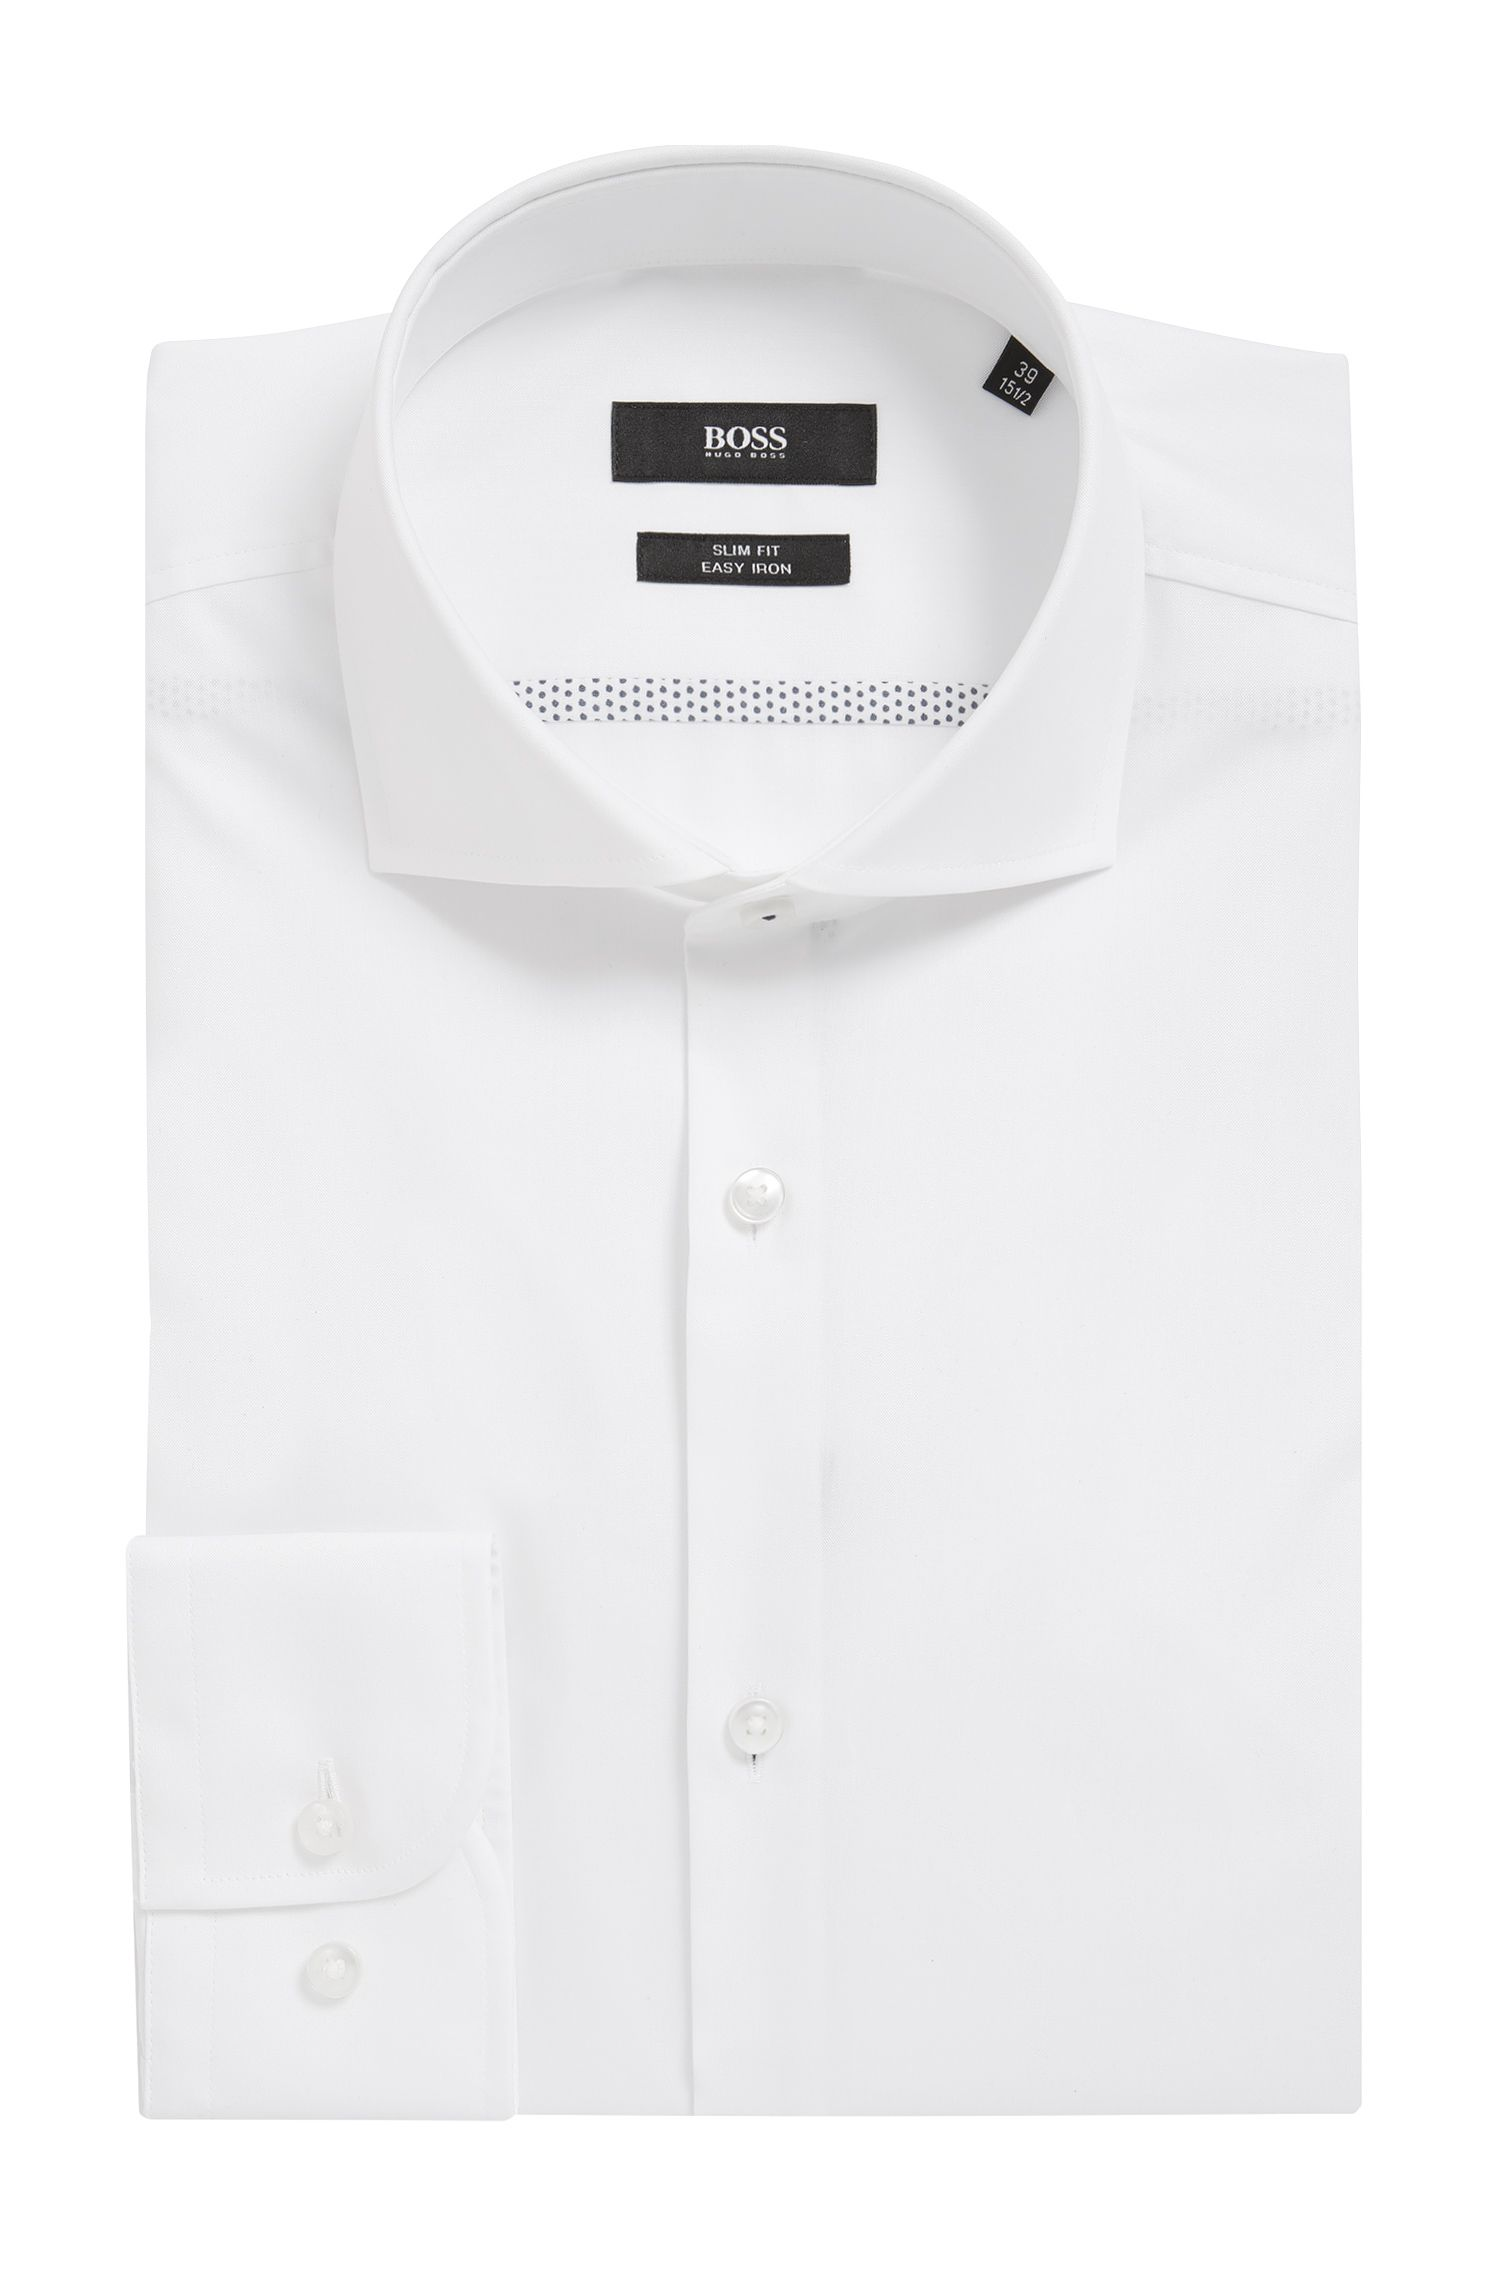 Easy-Iron Italian Cotton Dress Shirt, Slim Fit  | Jerrin